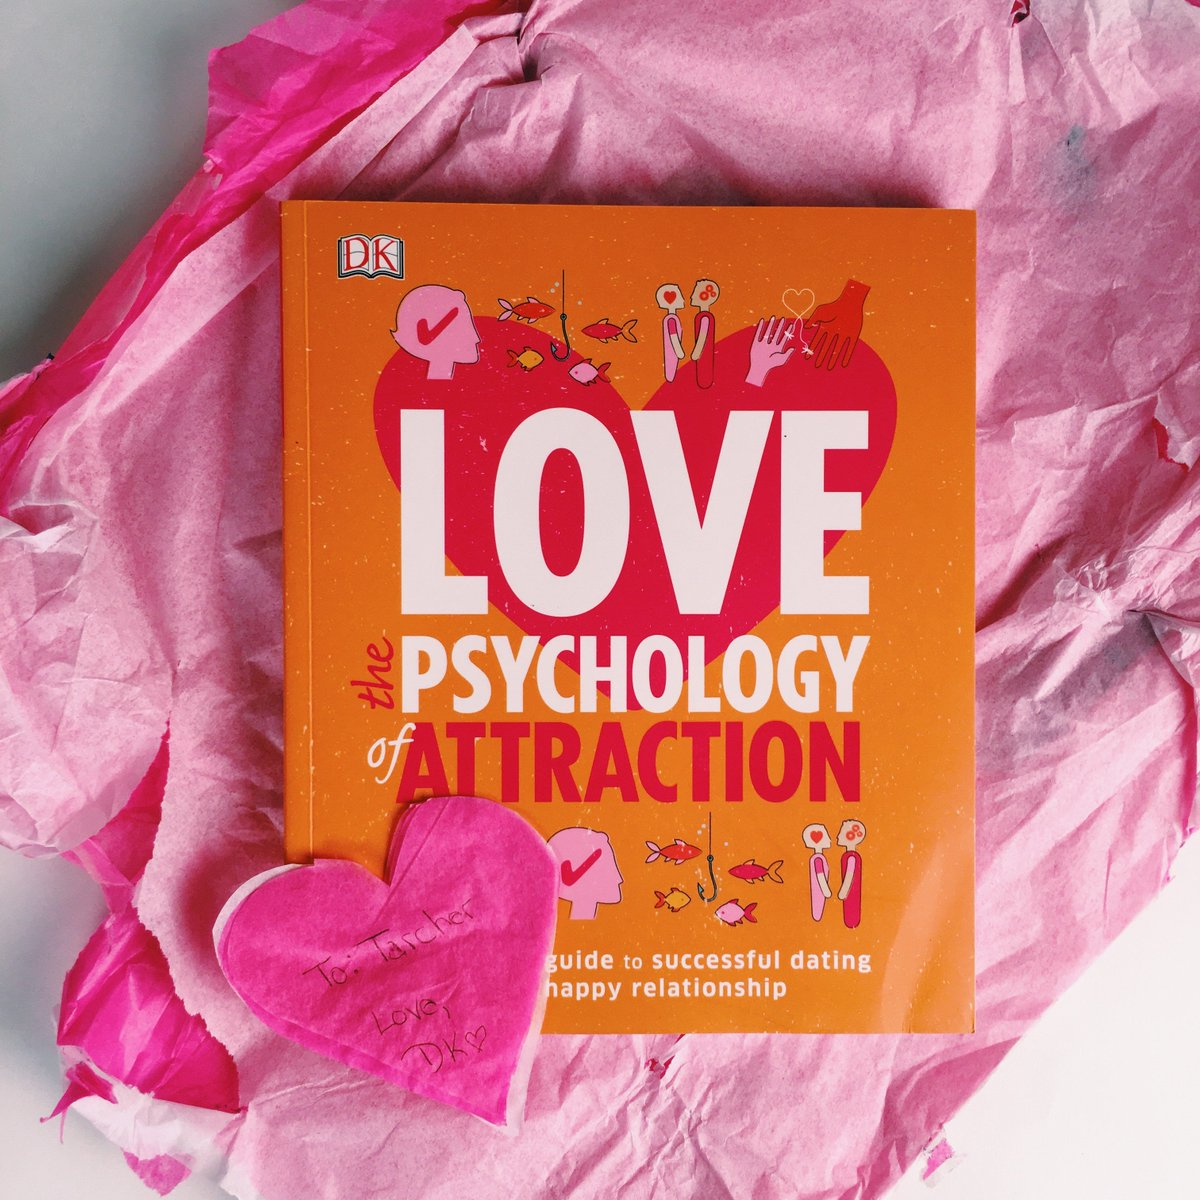 Improve your chances to find love this #ValentinesDay with #Love: The Psychology of Attraction. Thanks for the gift, @dkpublishing! #ReadMyValentine